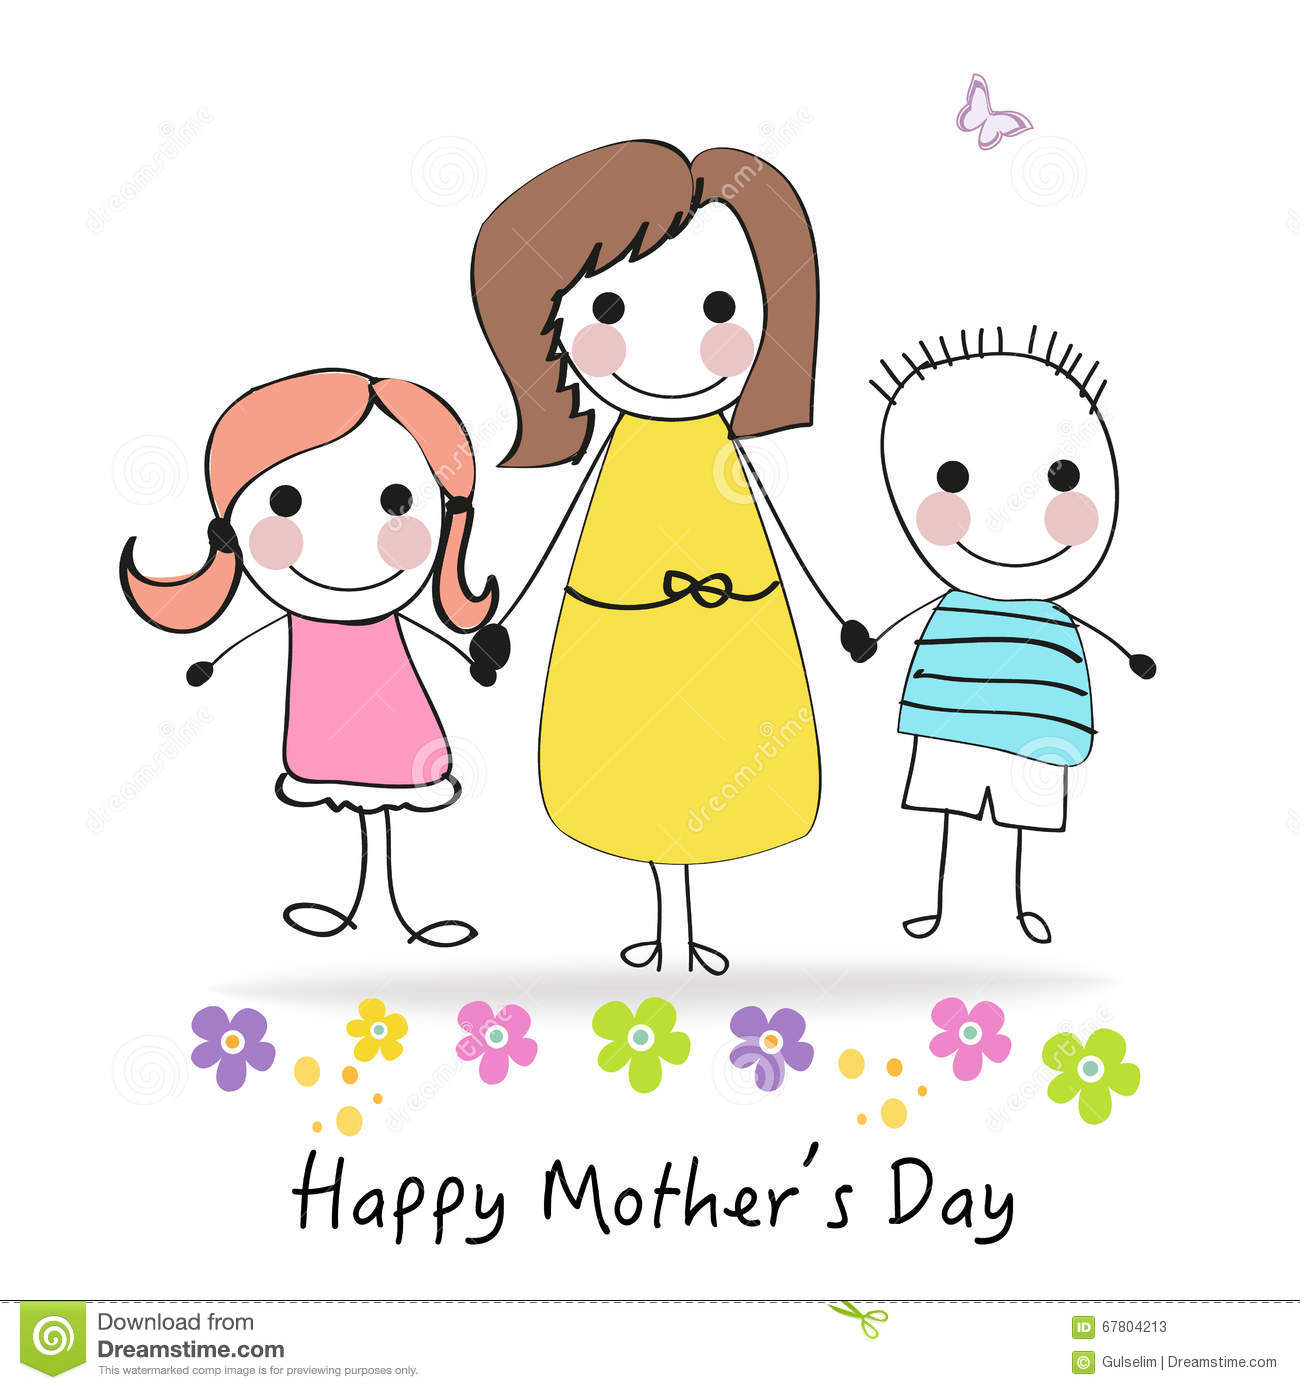 Happy Mothers Day Greeting Card With Cartoon Kids And Mother Vector